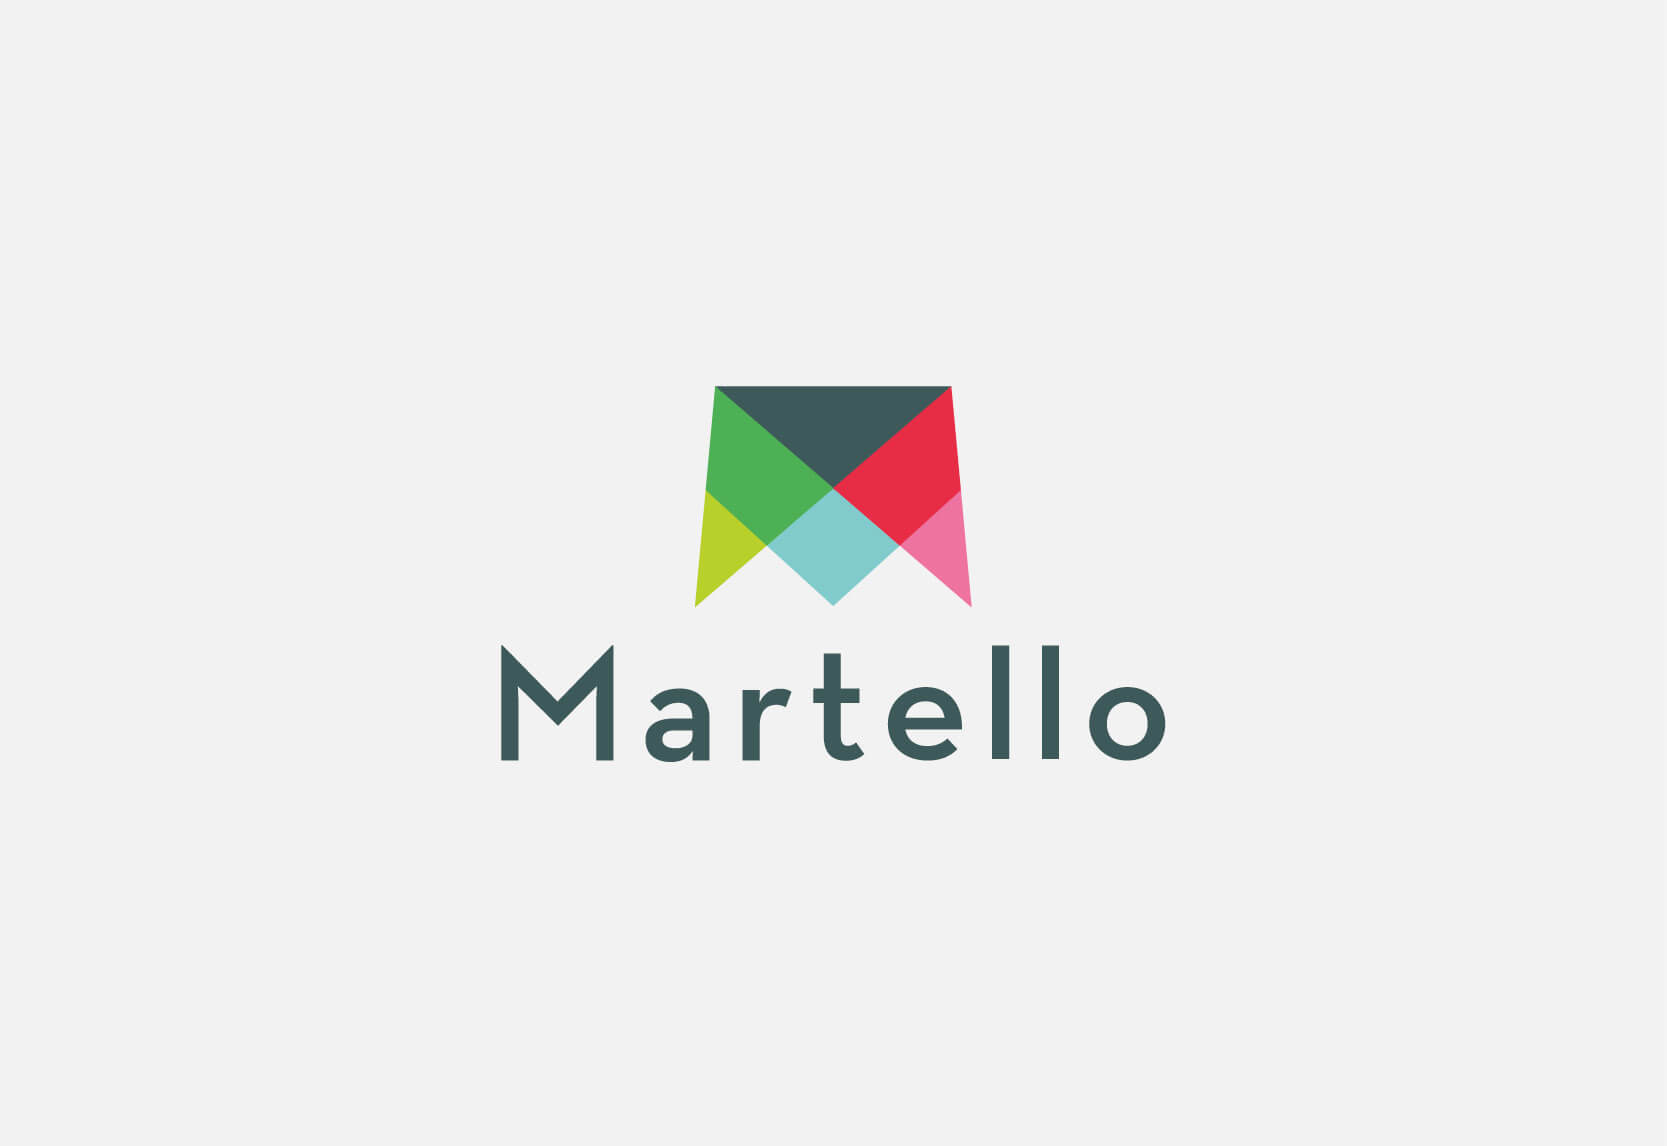 Martello Creative Software logo